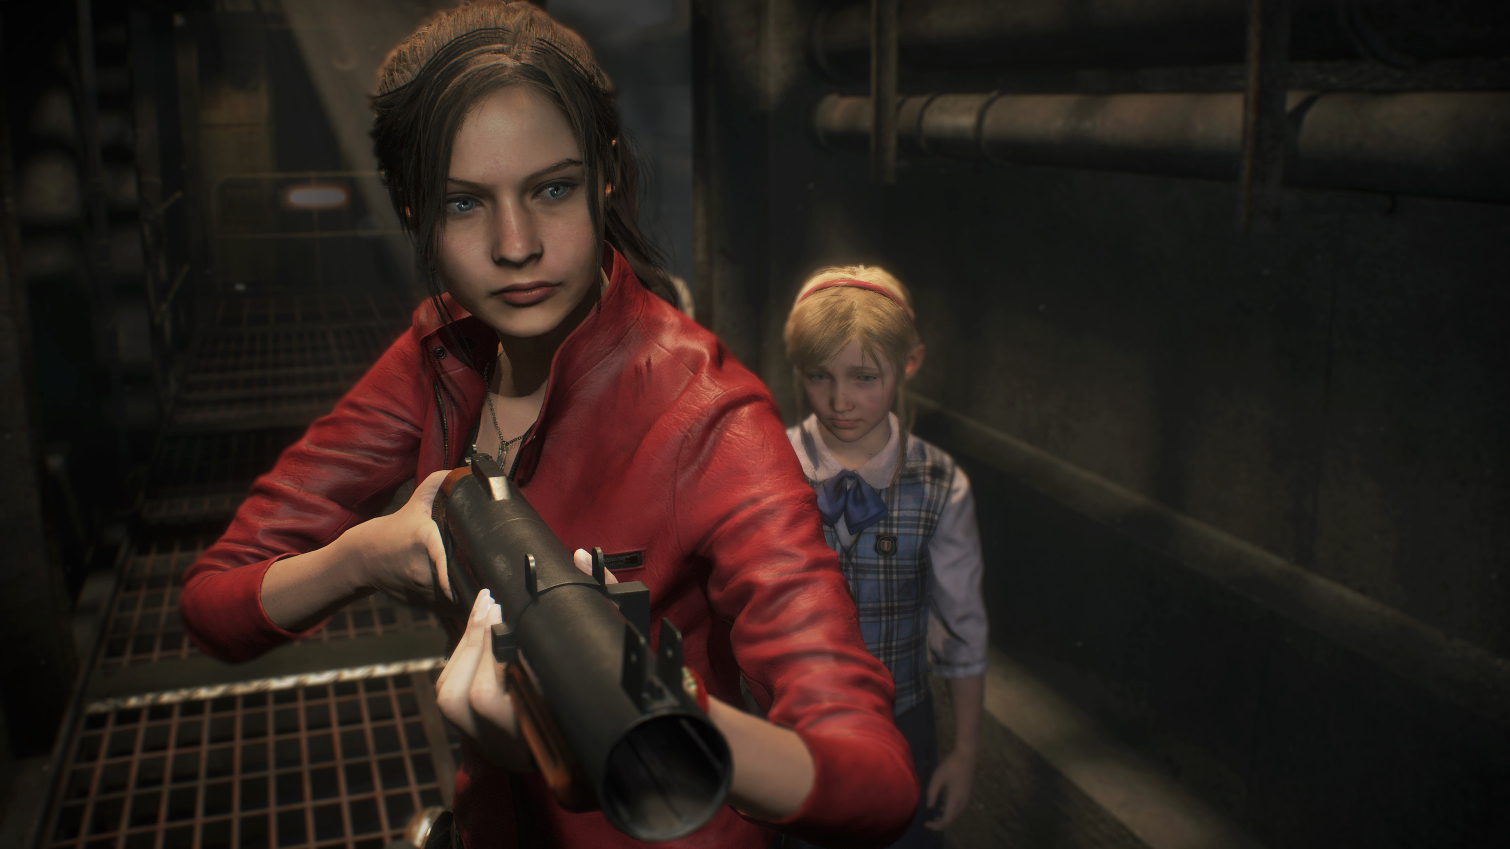 Resident Evil 2: Release Date, Gameplay Impressions and More | Tom's